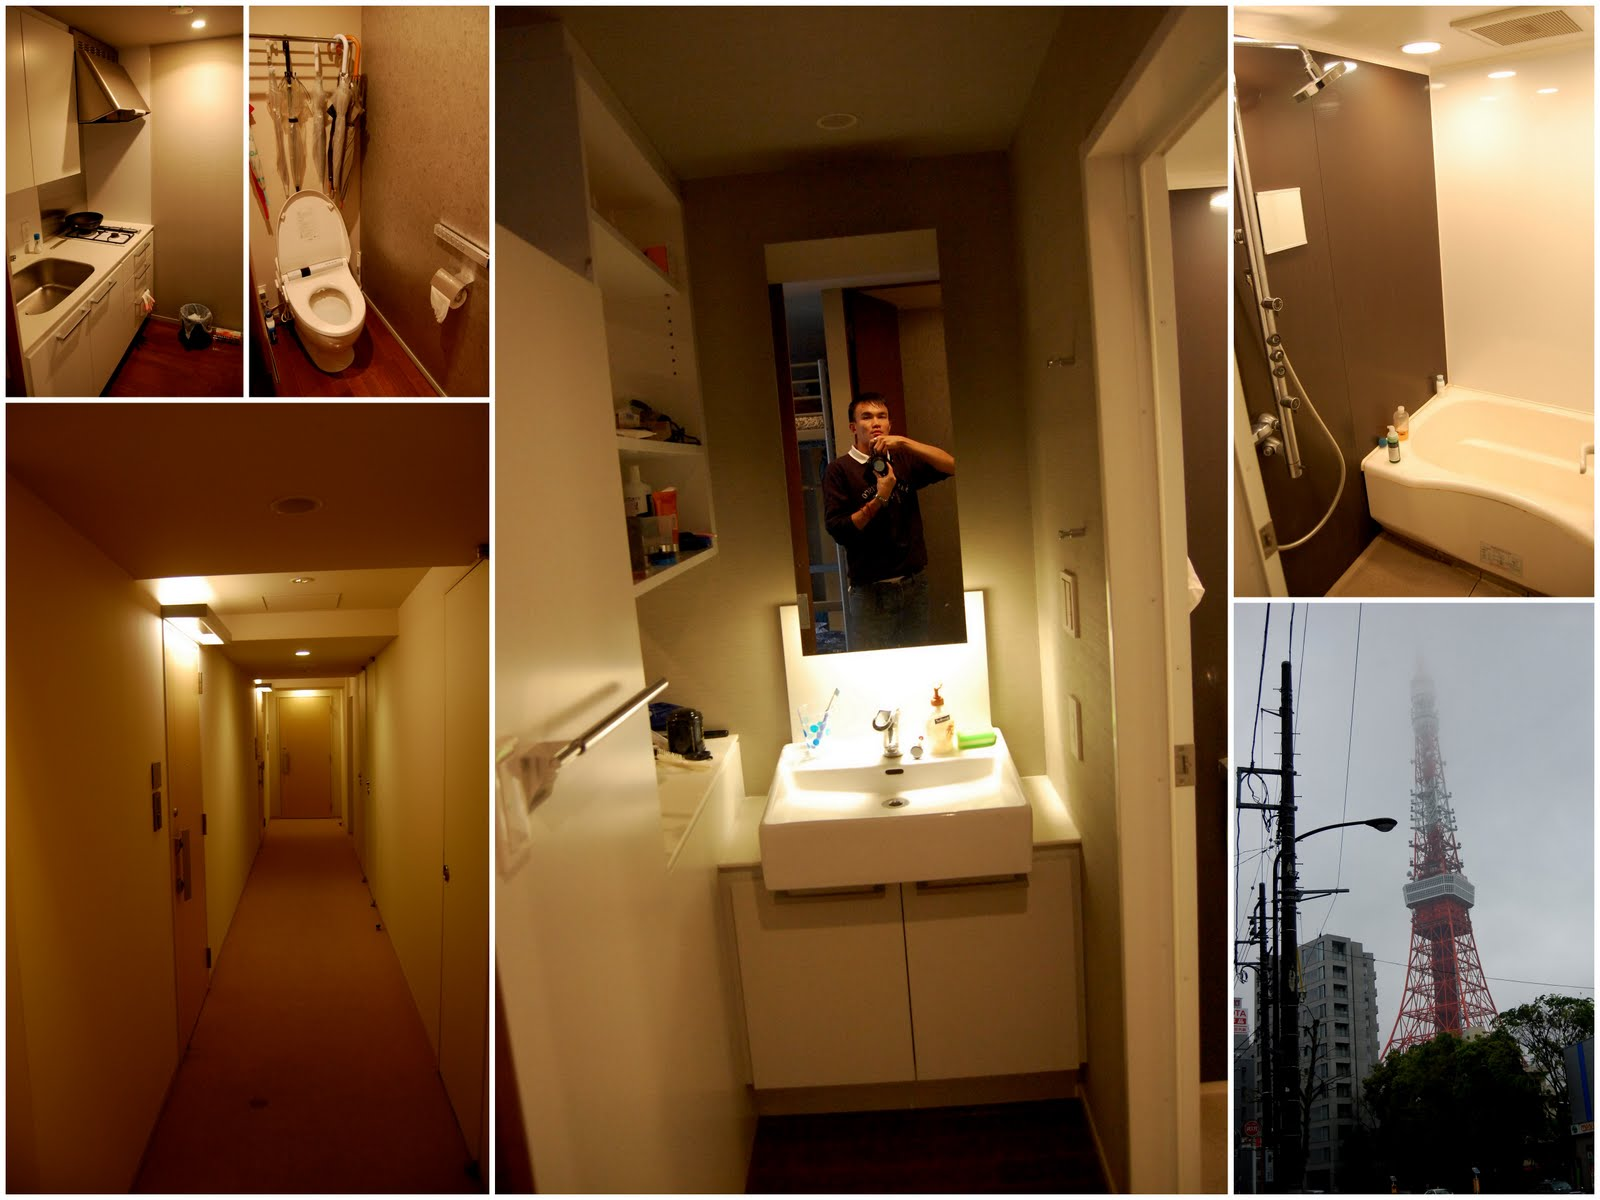 Sf s studio apartment in the heart of tokyo city near roppongi